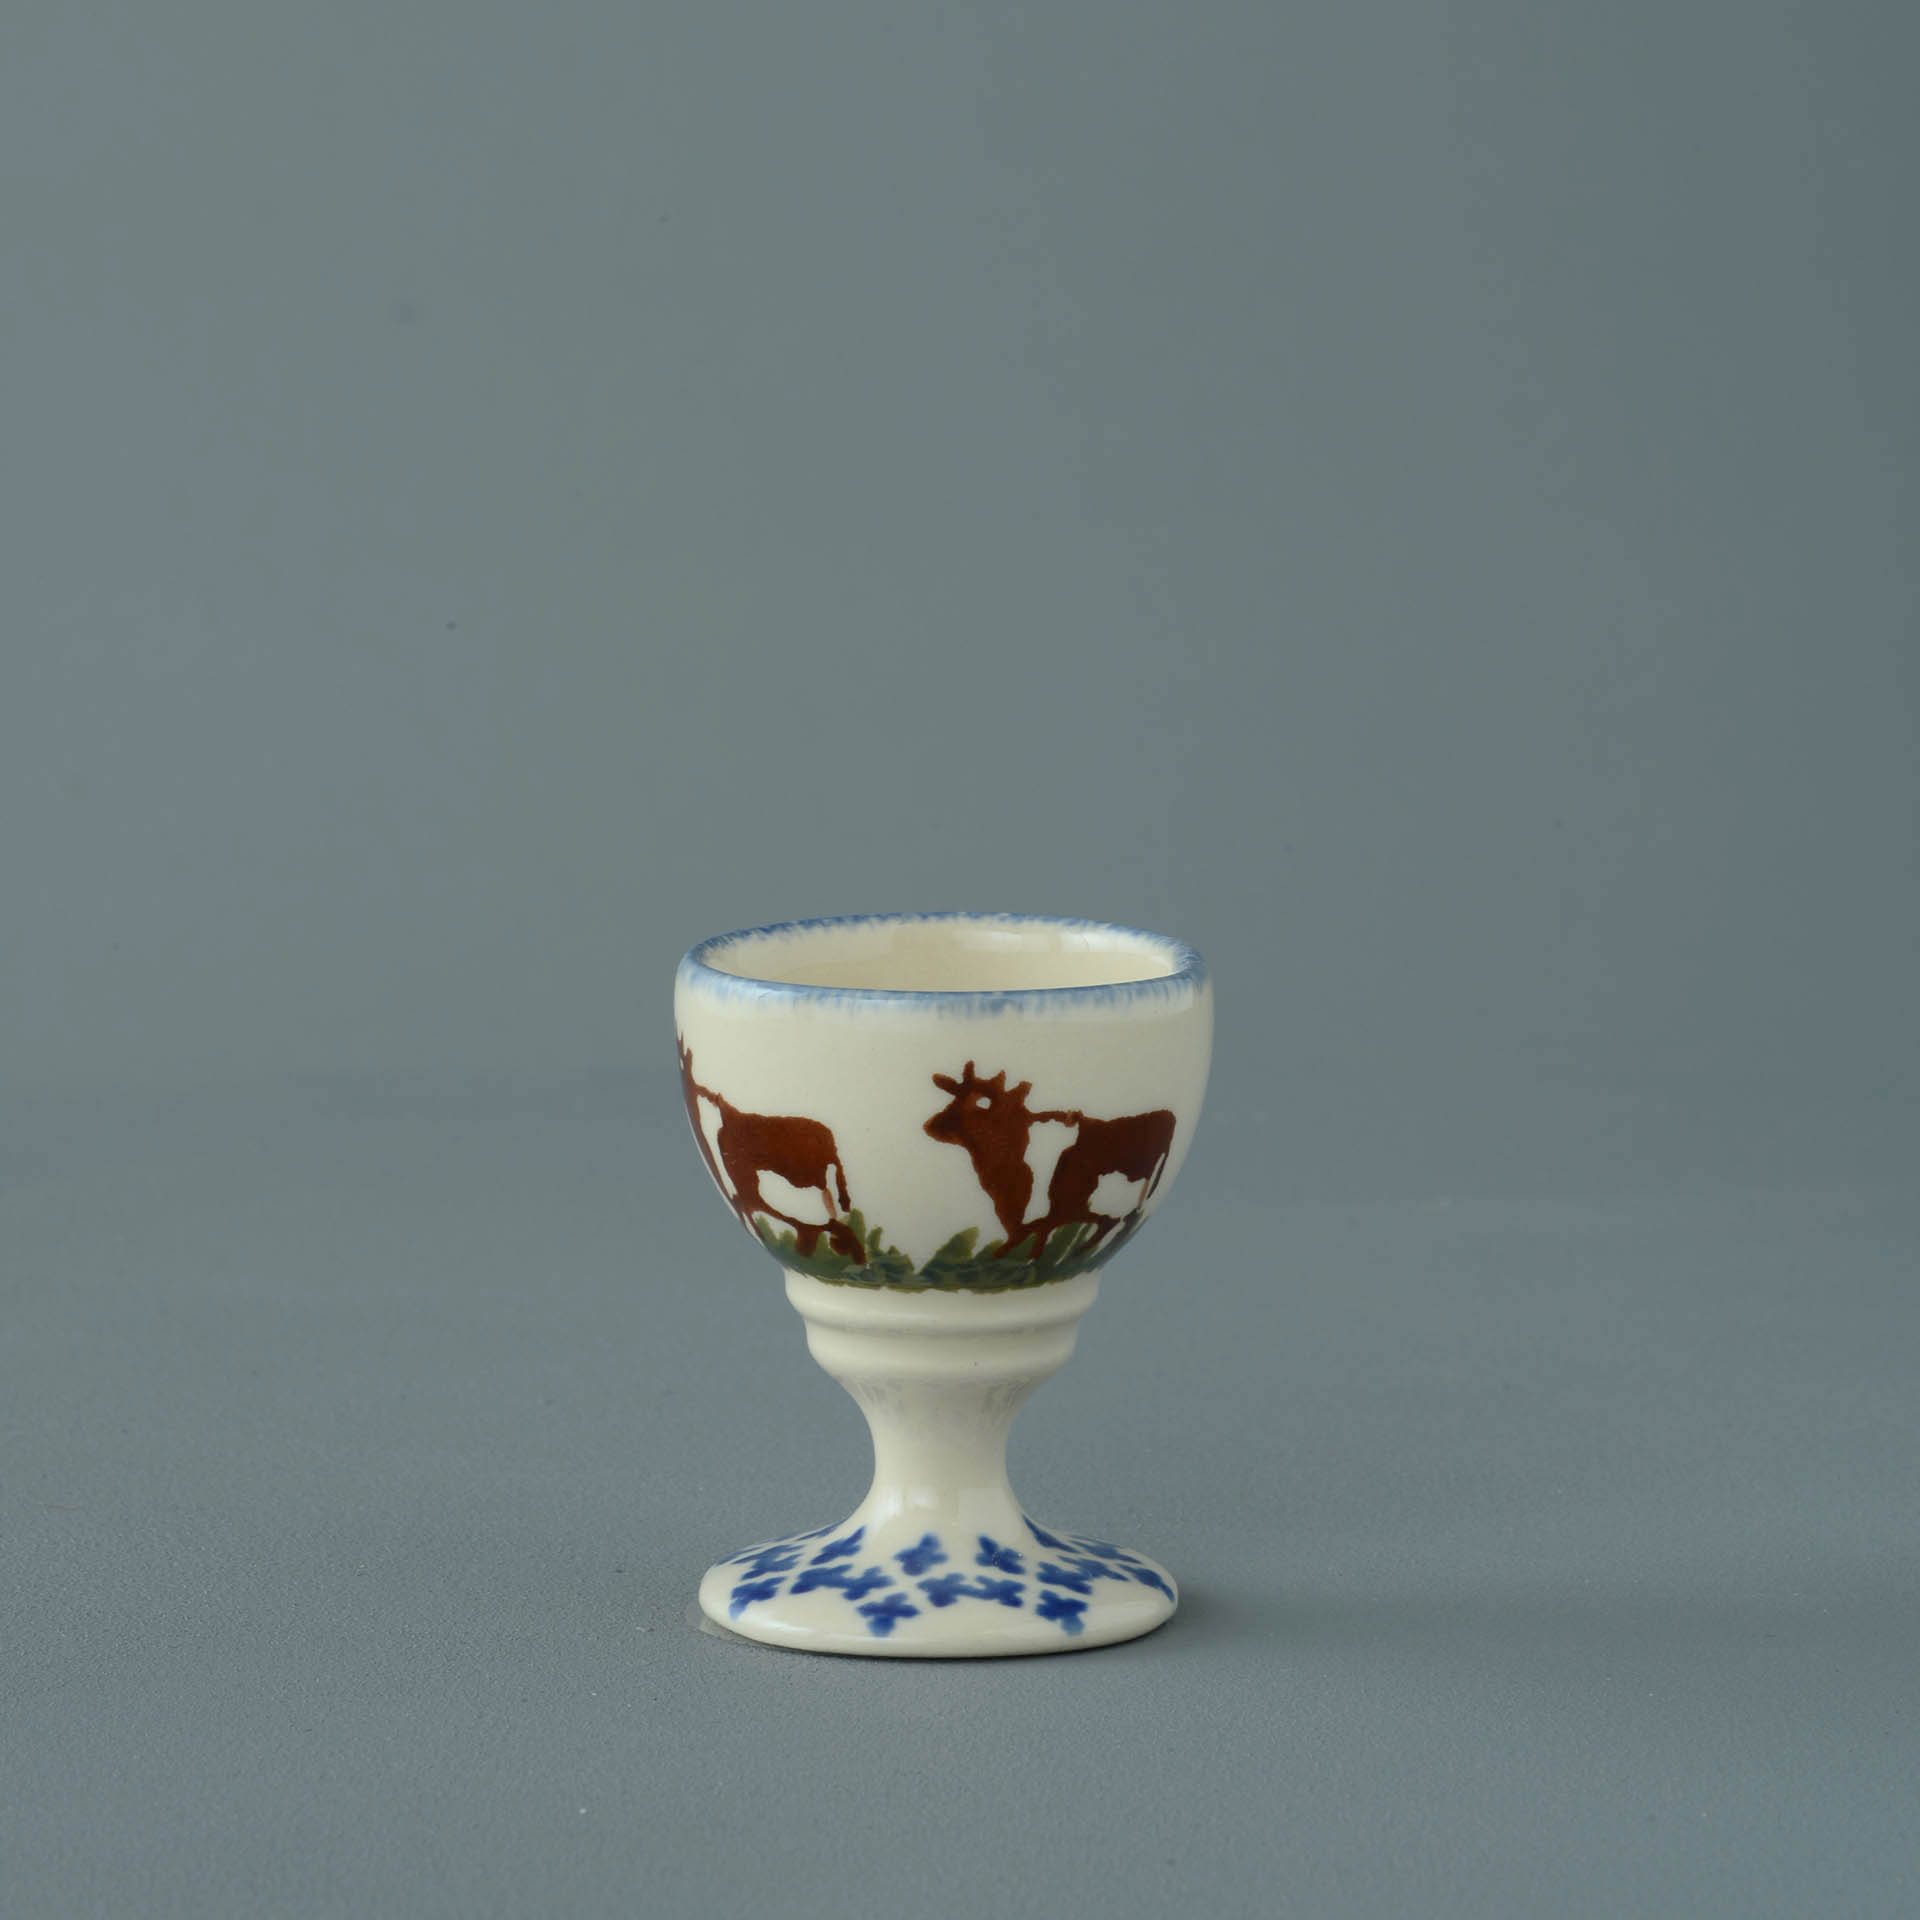 Cows Egg cup 6.3 x 5.2cm